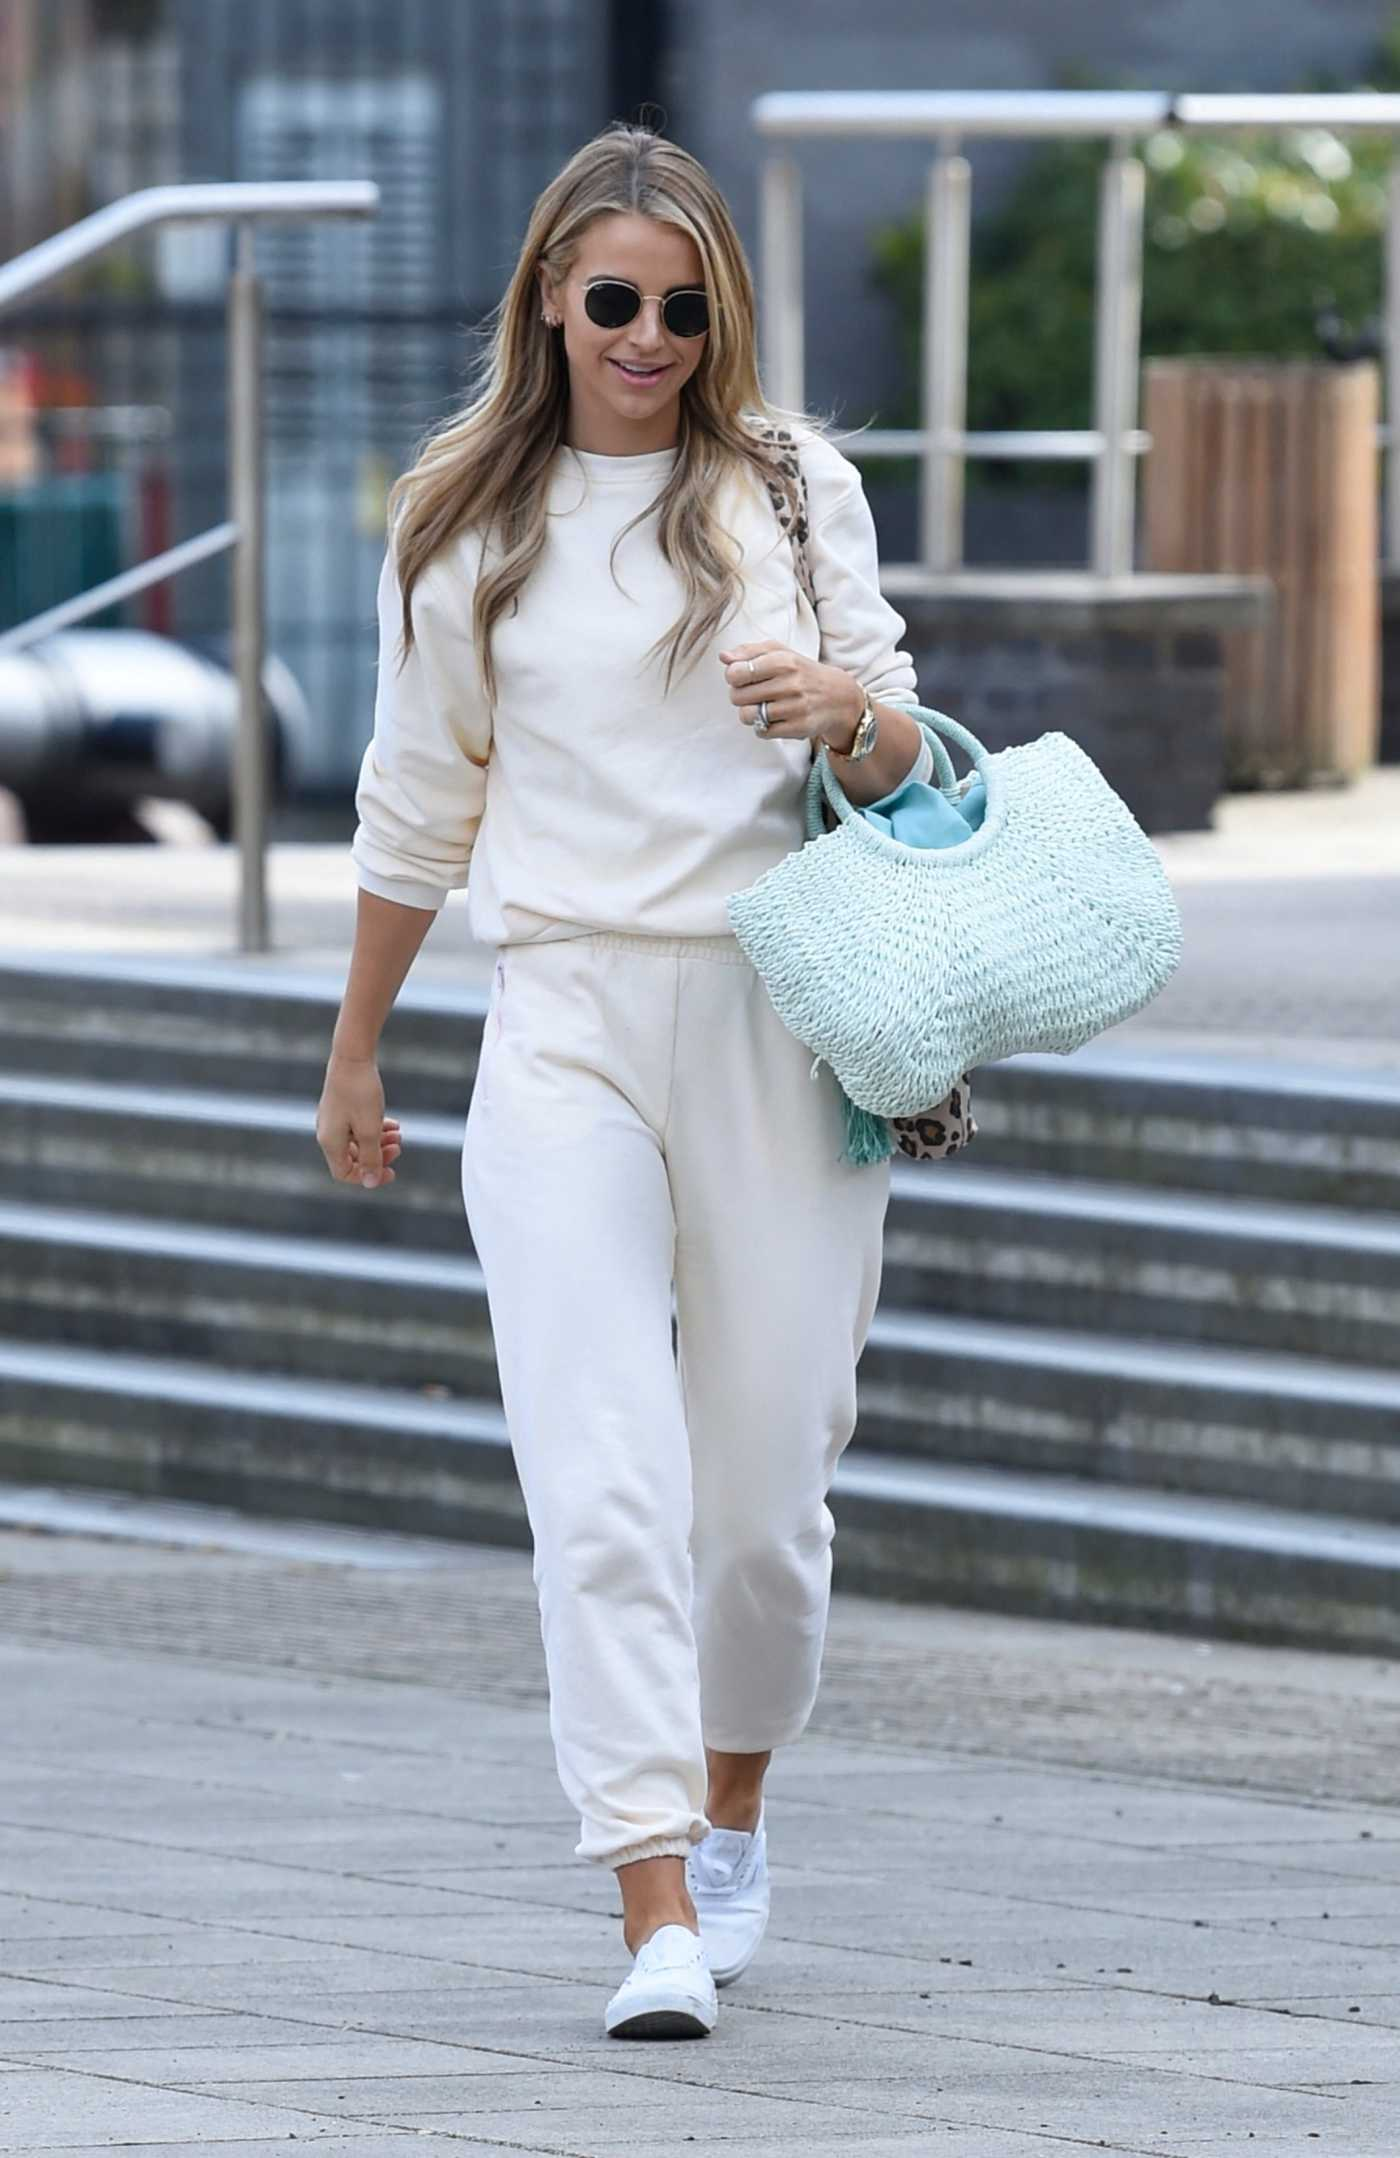 Vogue Williams in a White Sweatsuit Arrives at Stephs Packed Lunch TV Show in Leeds 05/13/2021